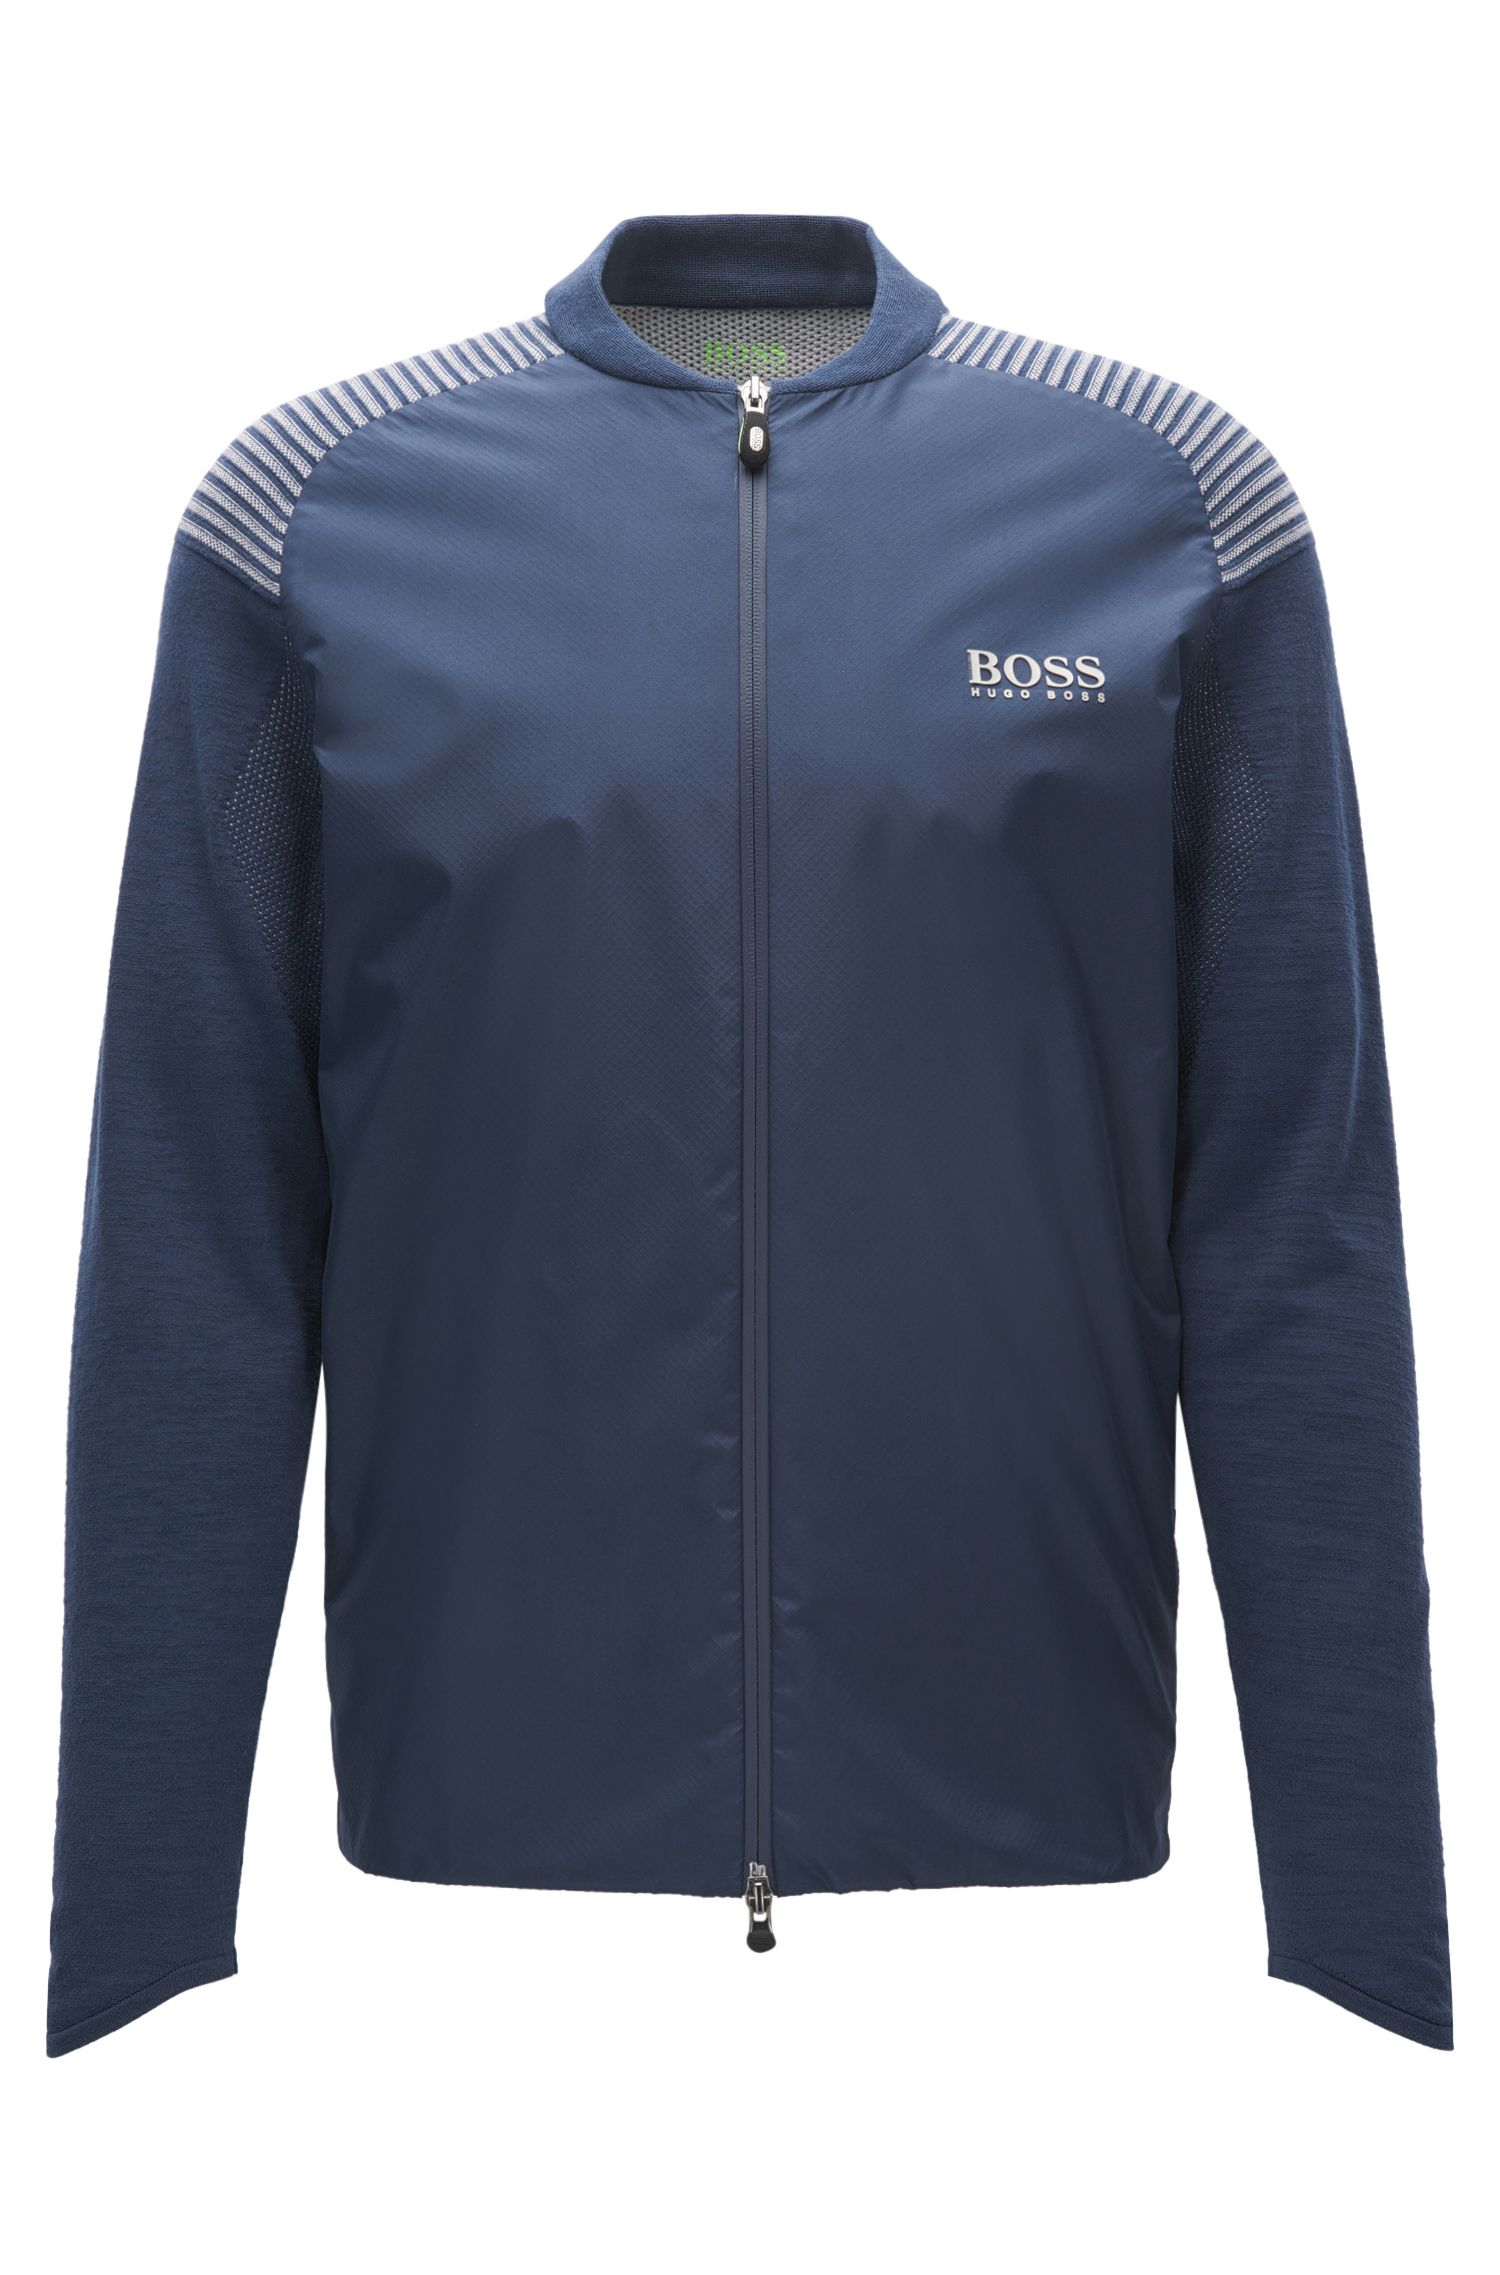 Cotton-blend zip-through jacket in a regular fit